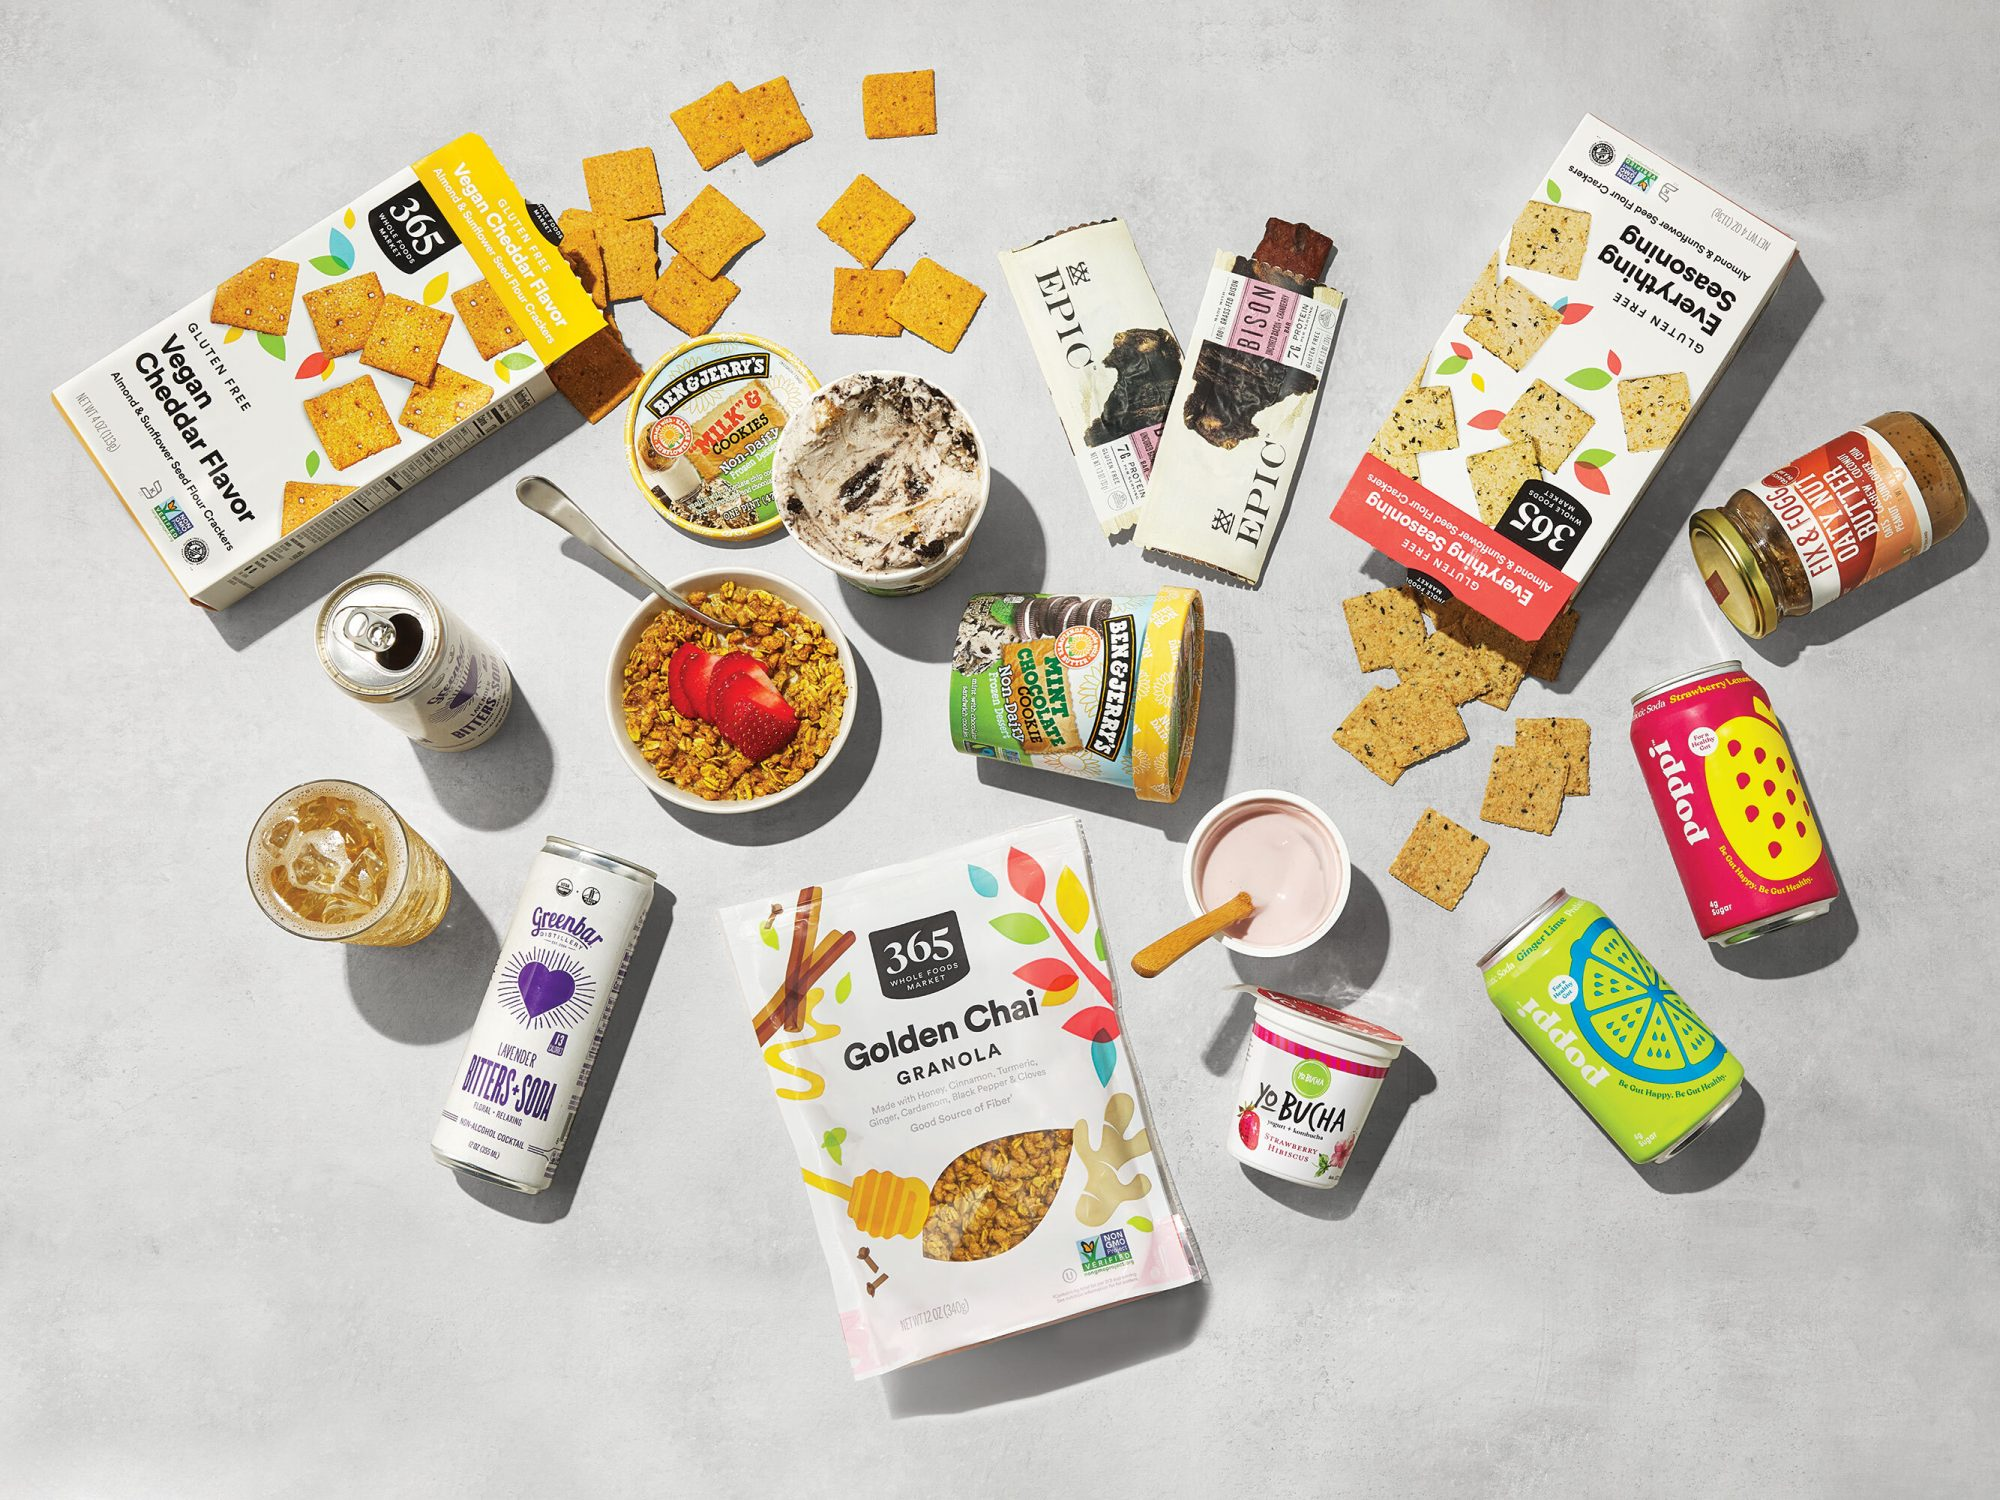 Whole Foods Market food trends 2022